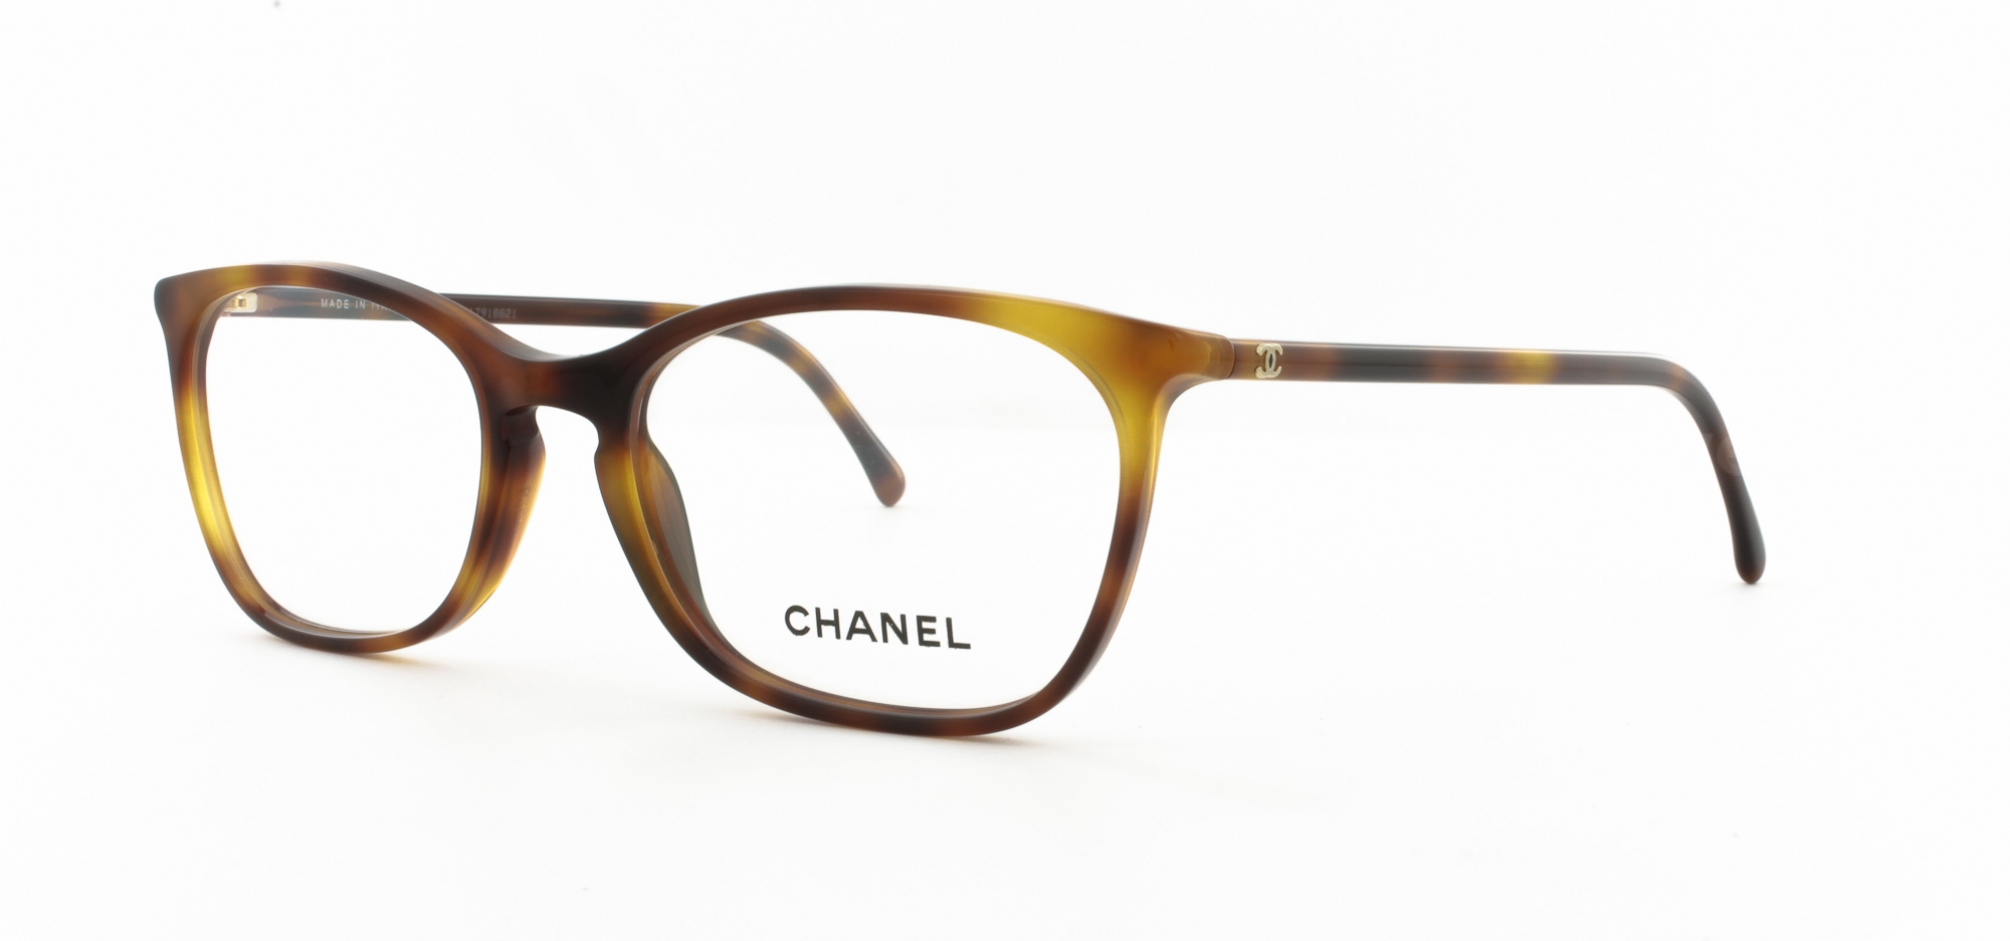 98a5b1d85ce Chanel Eyeglasses 3281 - Bitterroot Public Library